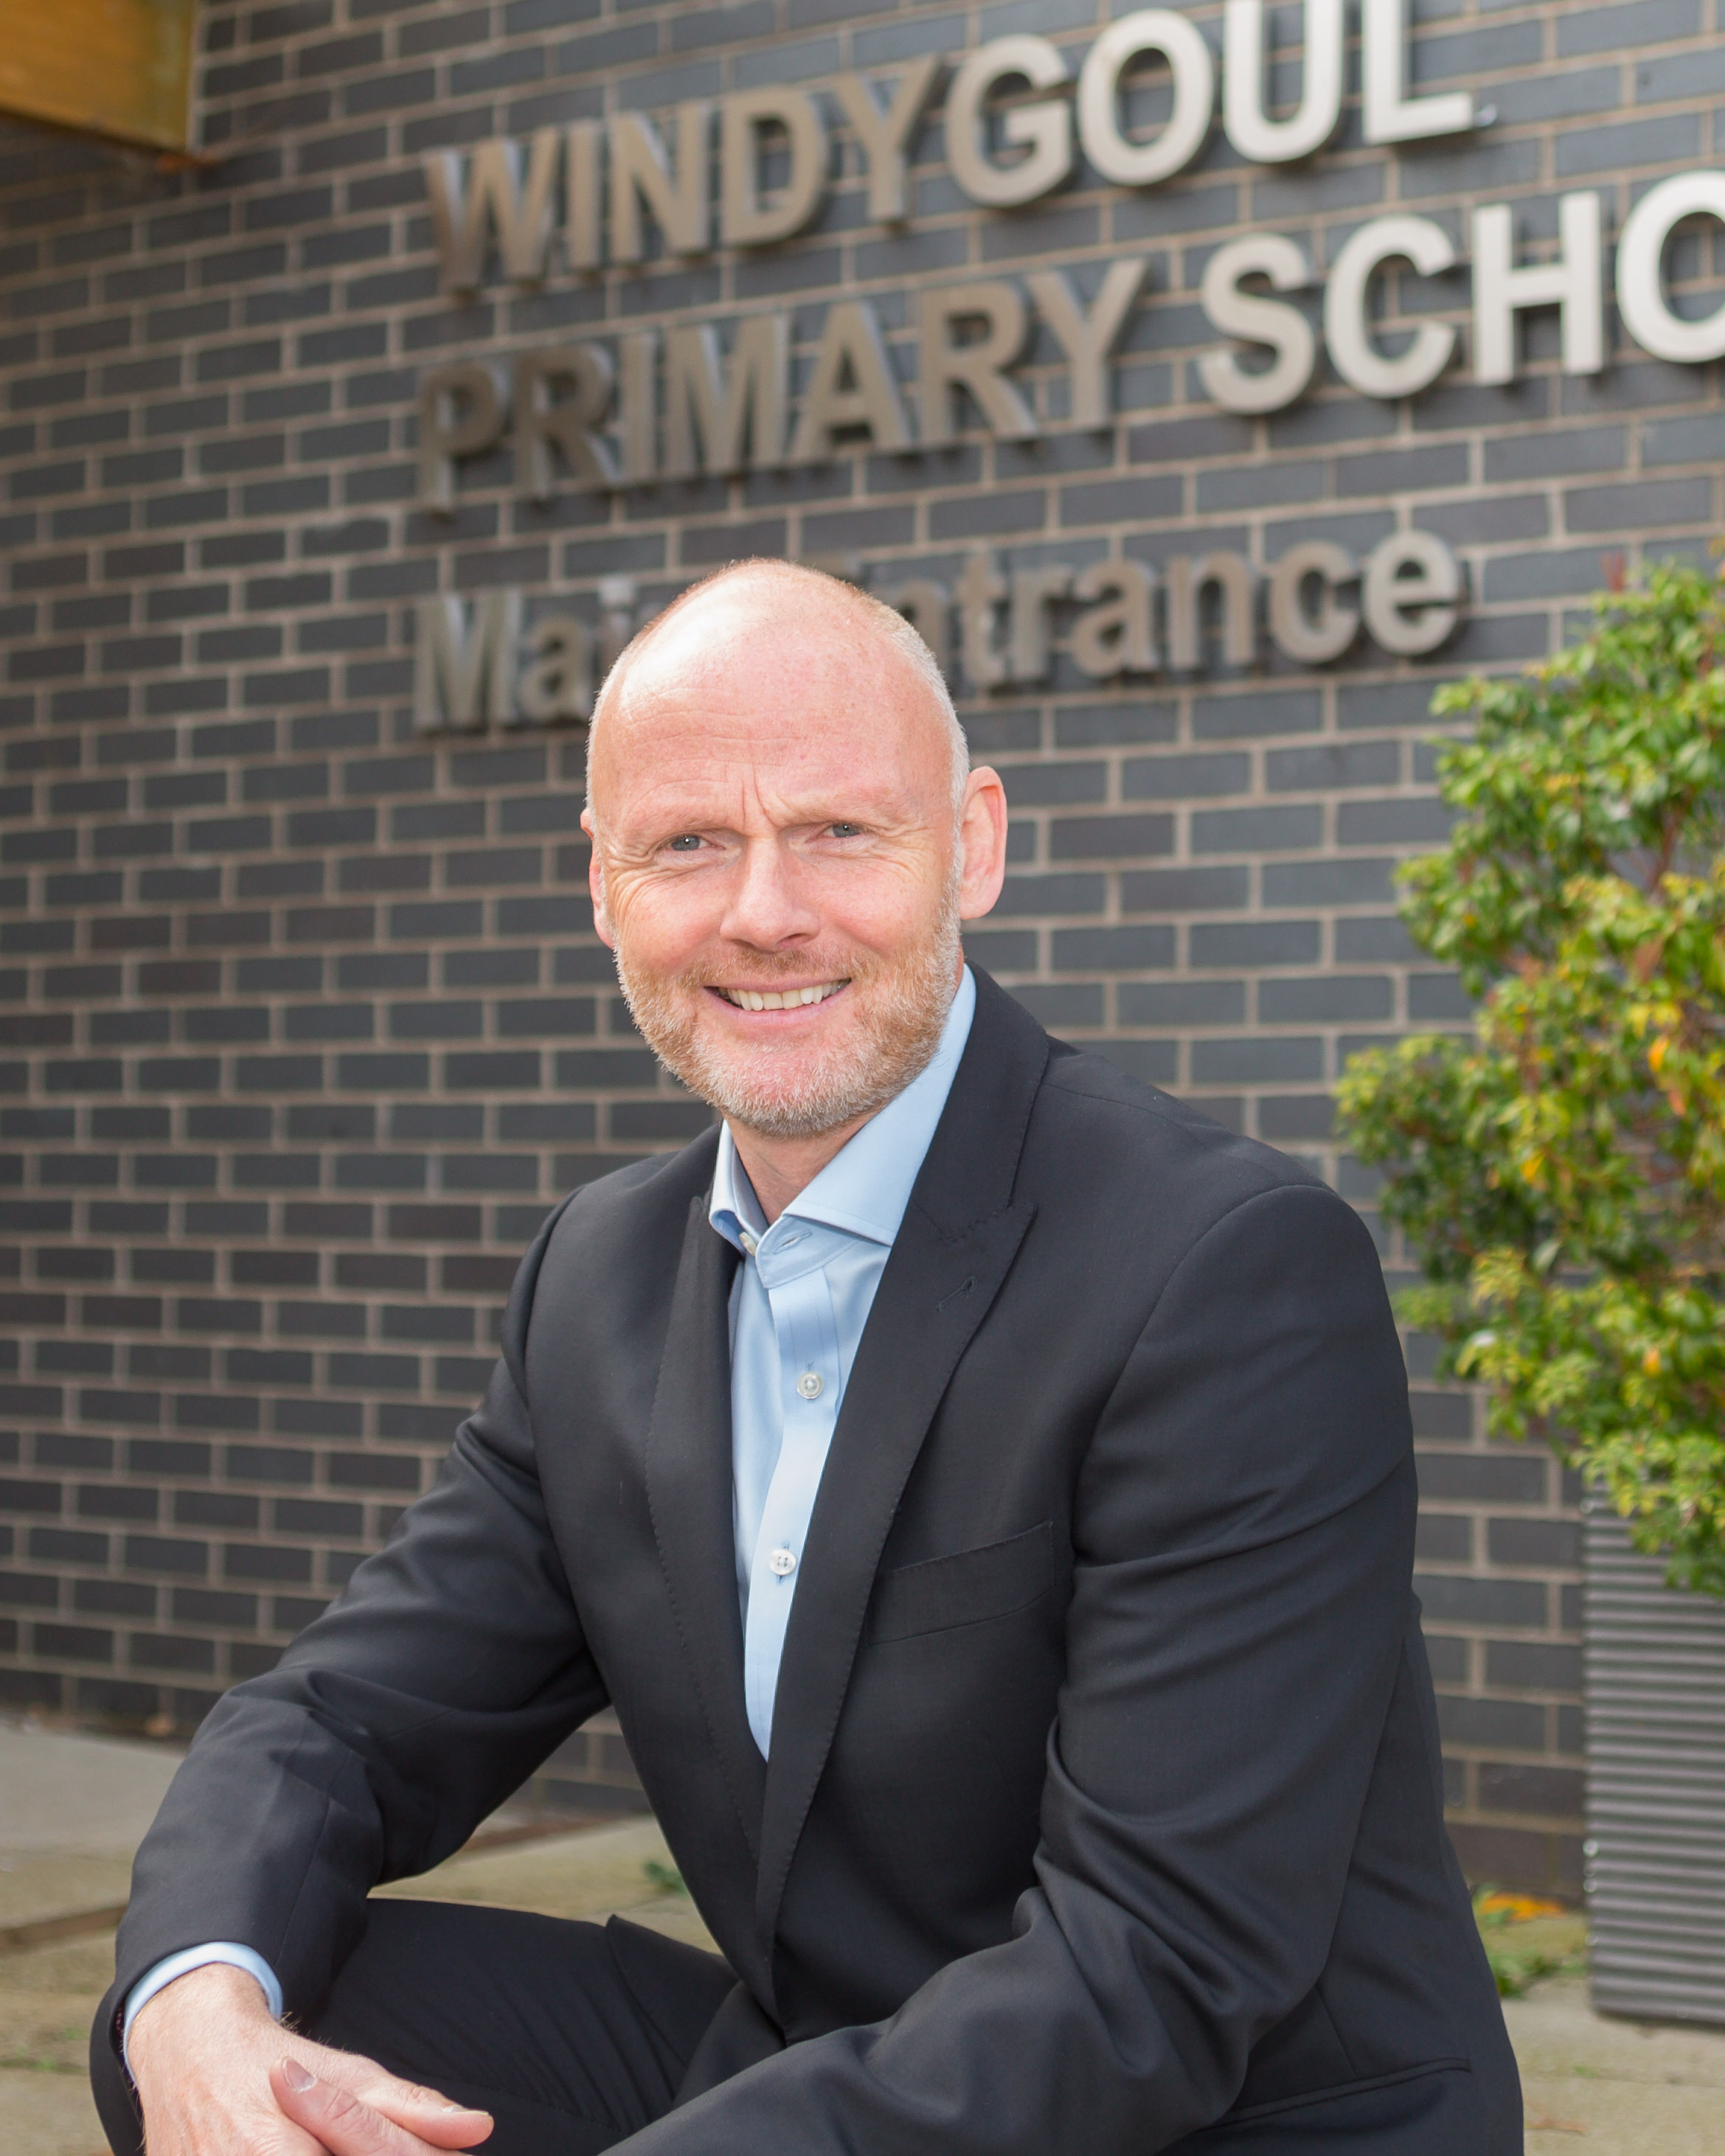 Bruce Murray is new head teacher at Windygoul Primary School